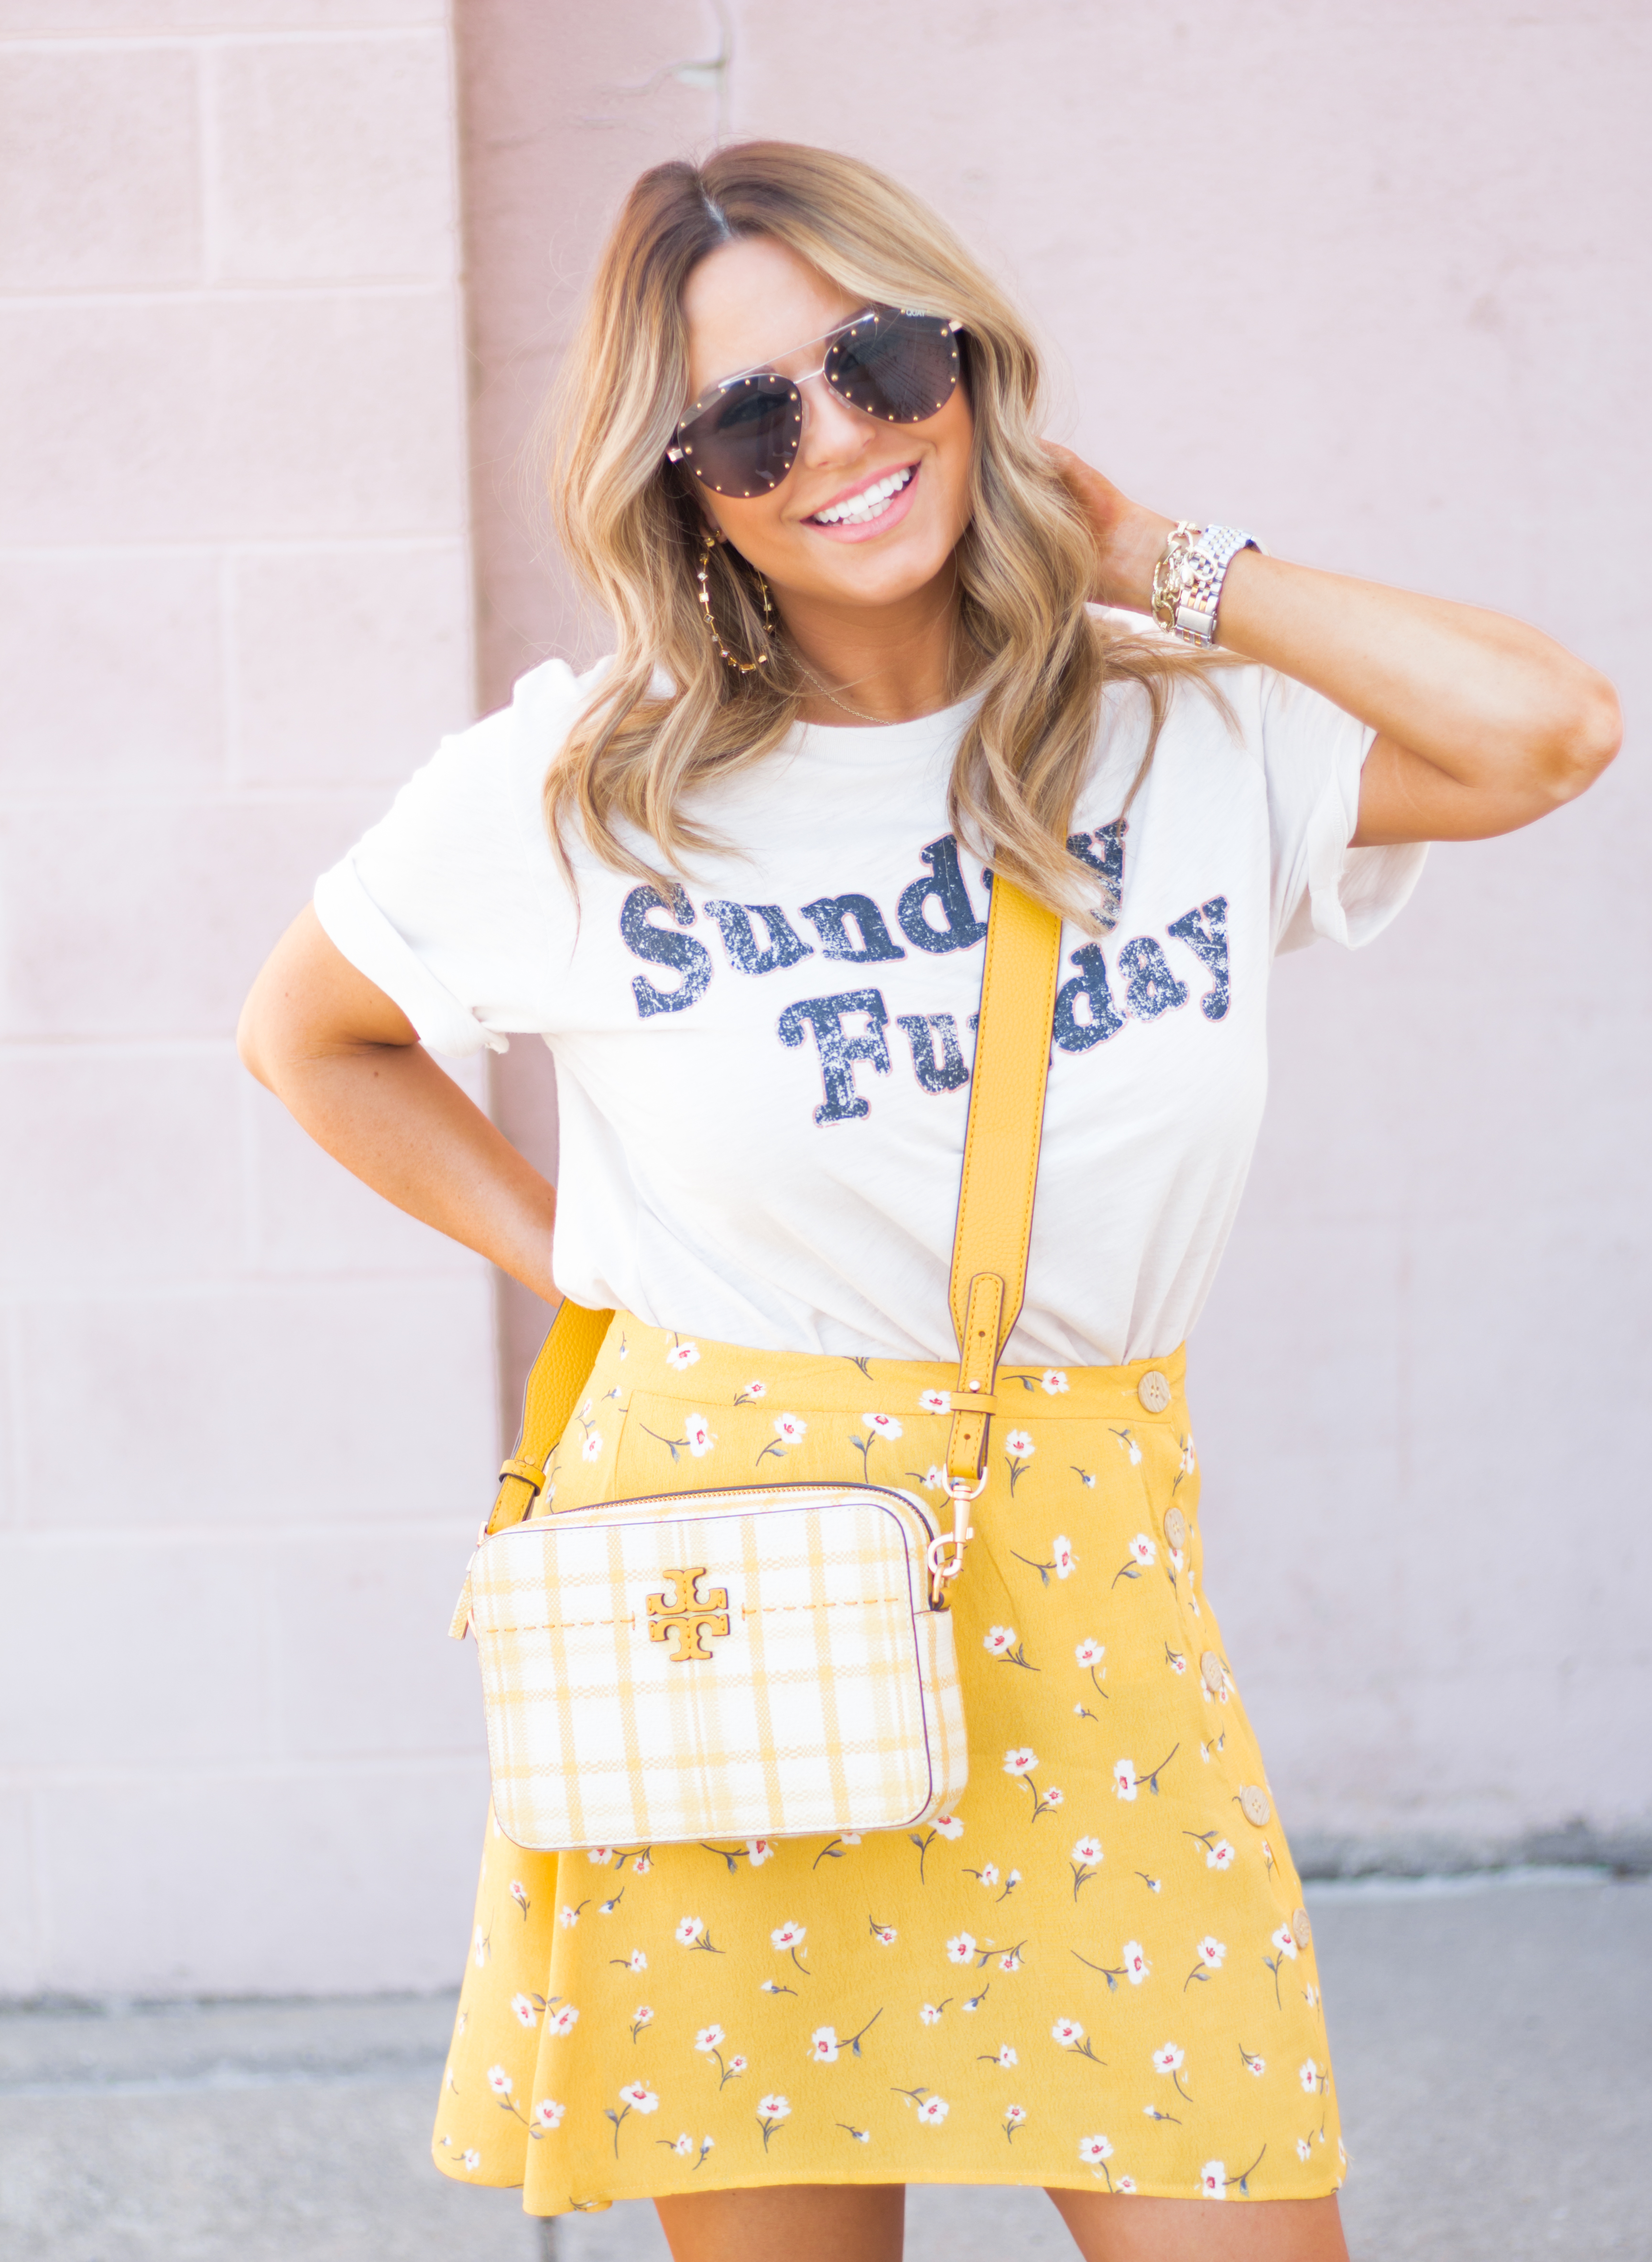 Sunday Funday-Graphic Tee-Floral Skirt-Mini Skirt-Spring Fashion-Spring Style-Tory Burch Purse-Quay Sunglasses-Tan Wedges-Espadrilles-Yellow-Colorful Style-Sabby Style-Women's Fashion-Omaha Blog-Omaha Blogger-9